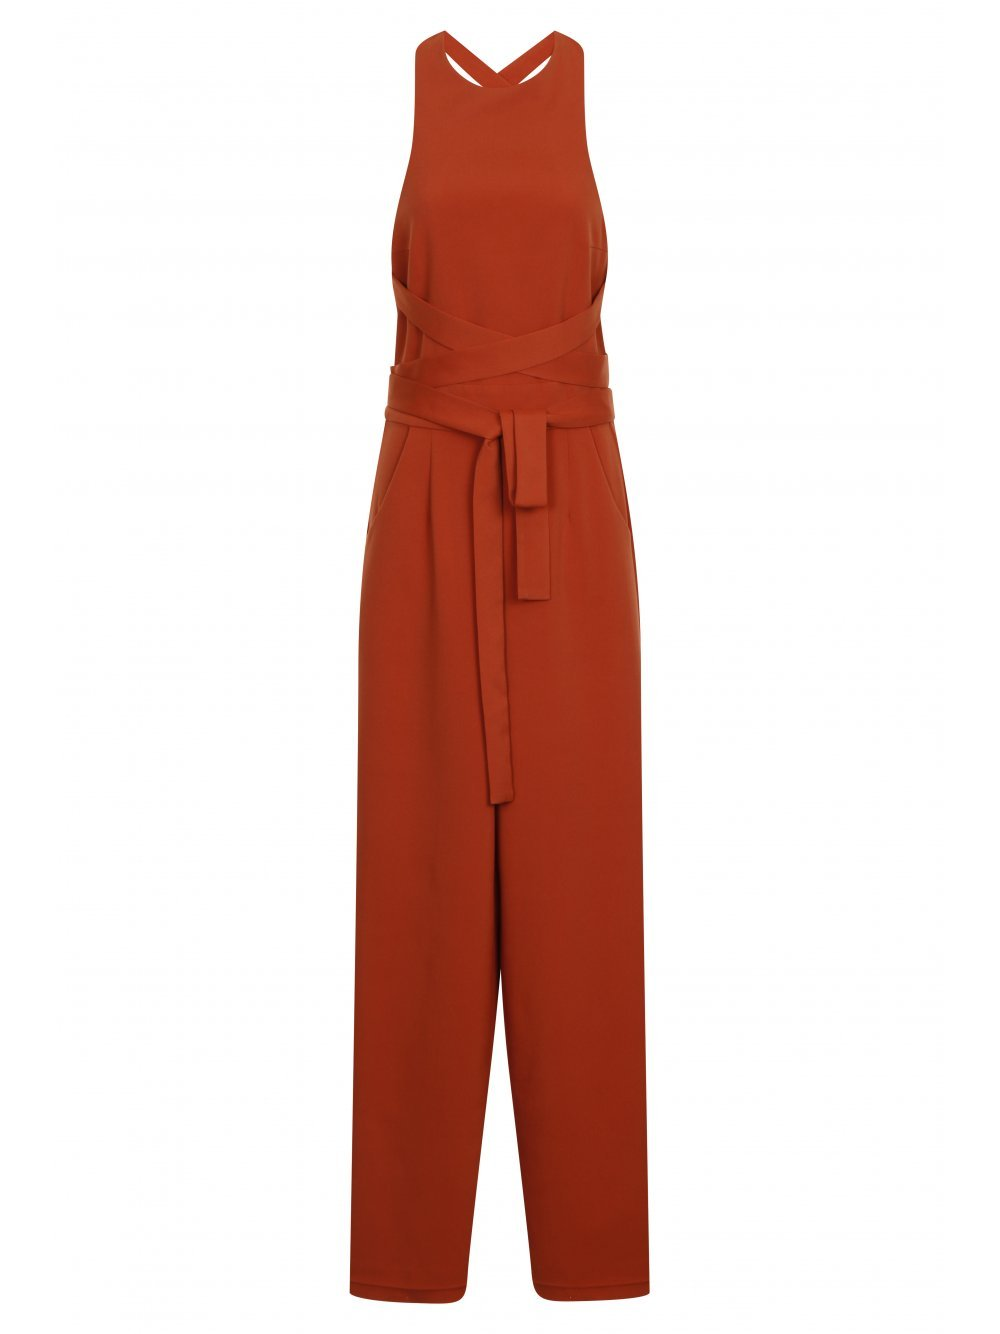 Rust Cross Strap Tie Detail Wide Leg Jumpsuit